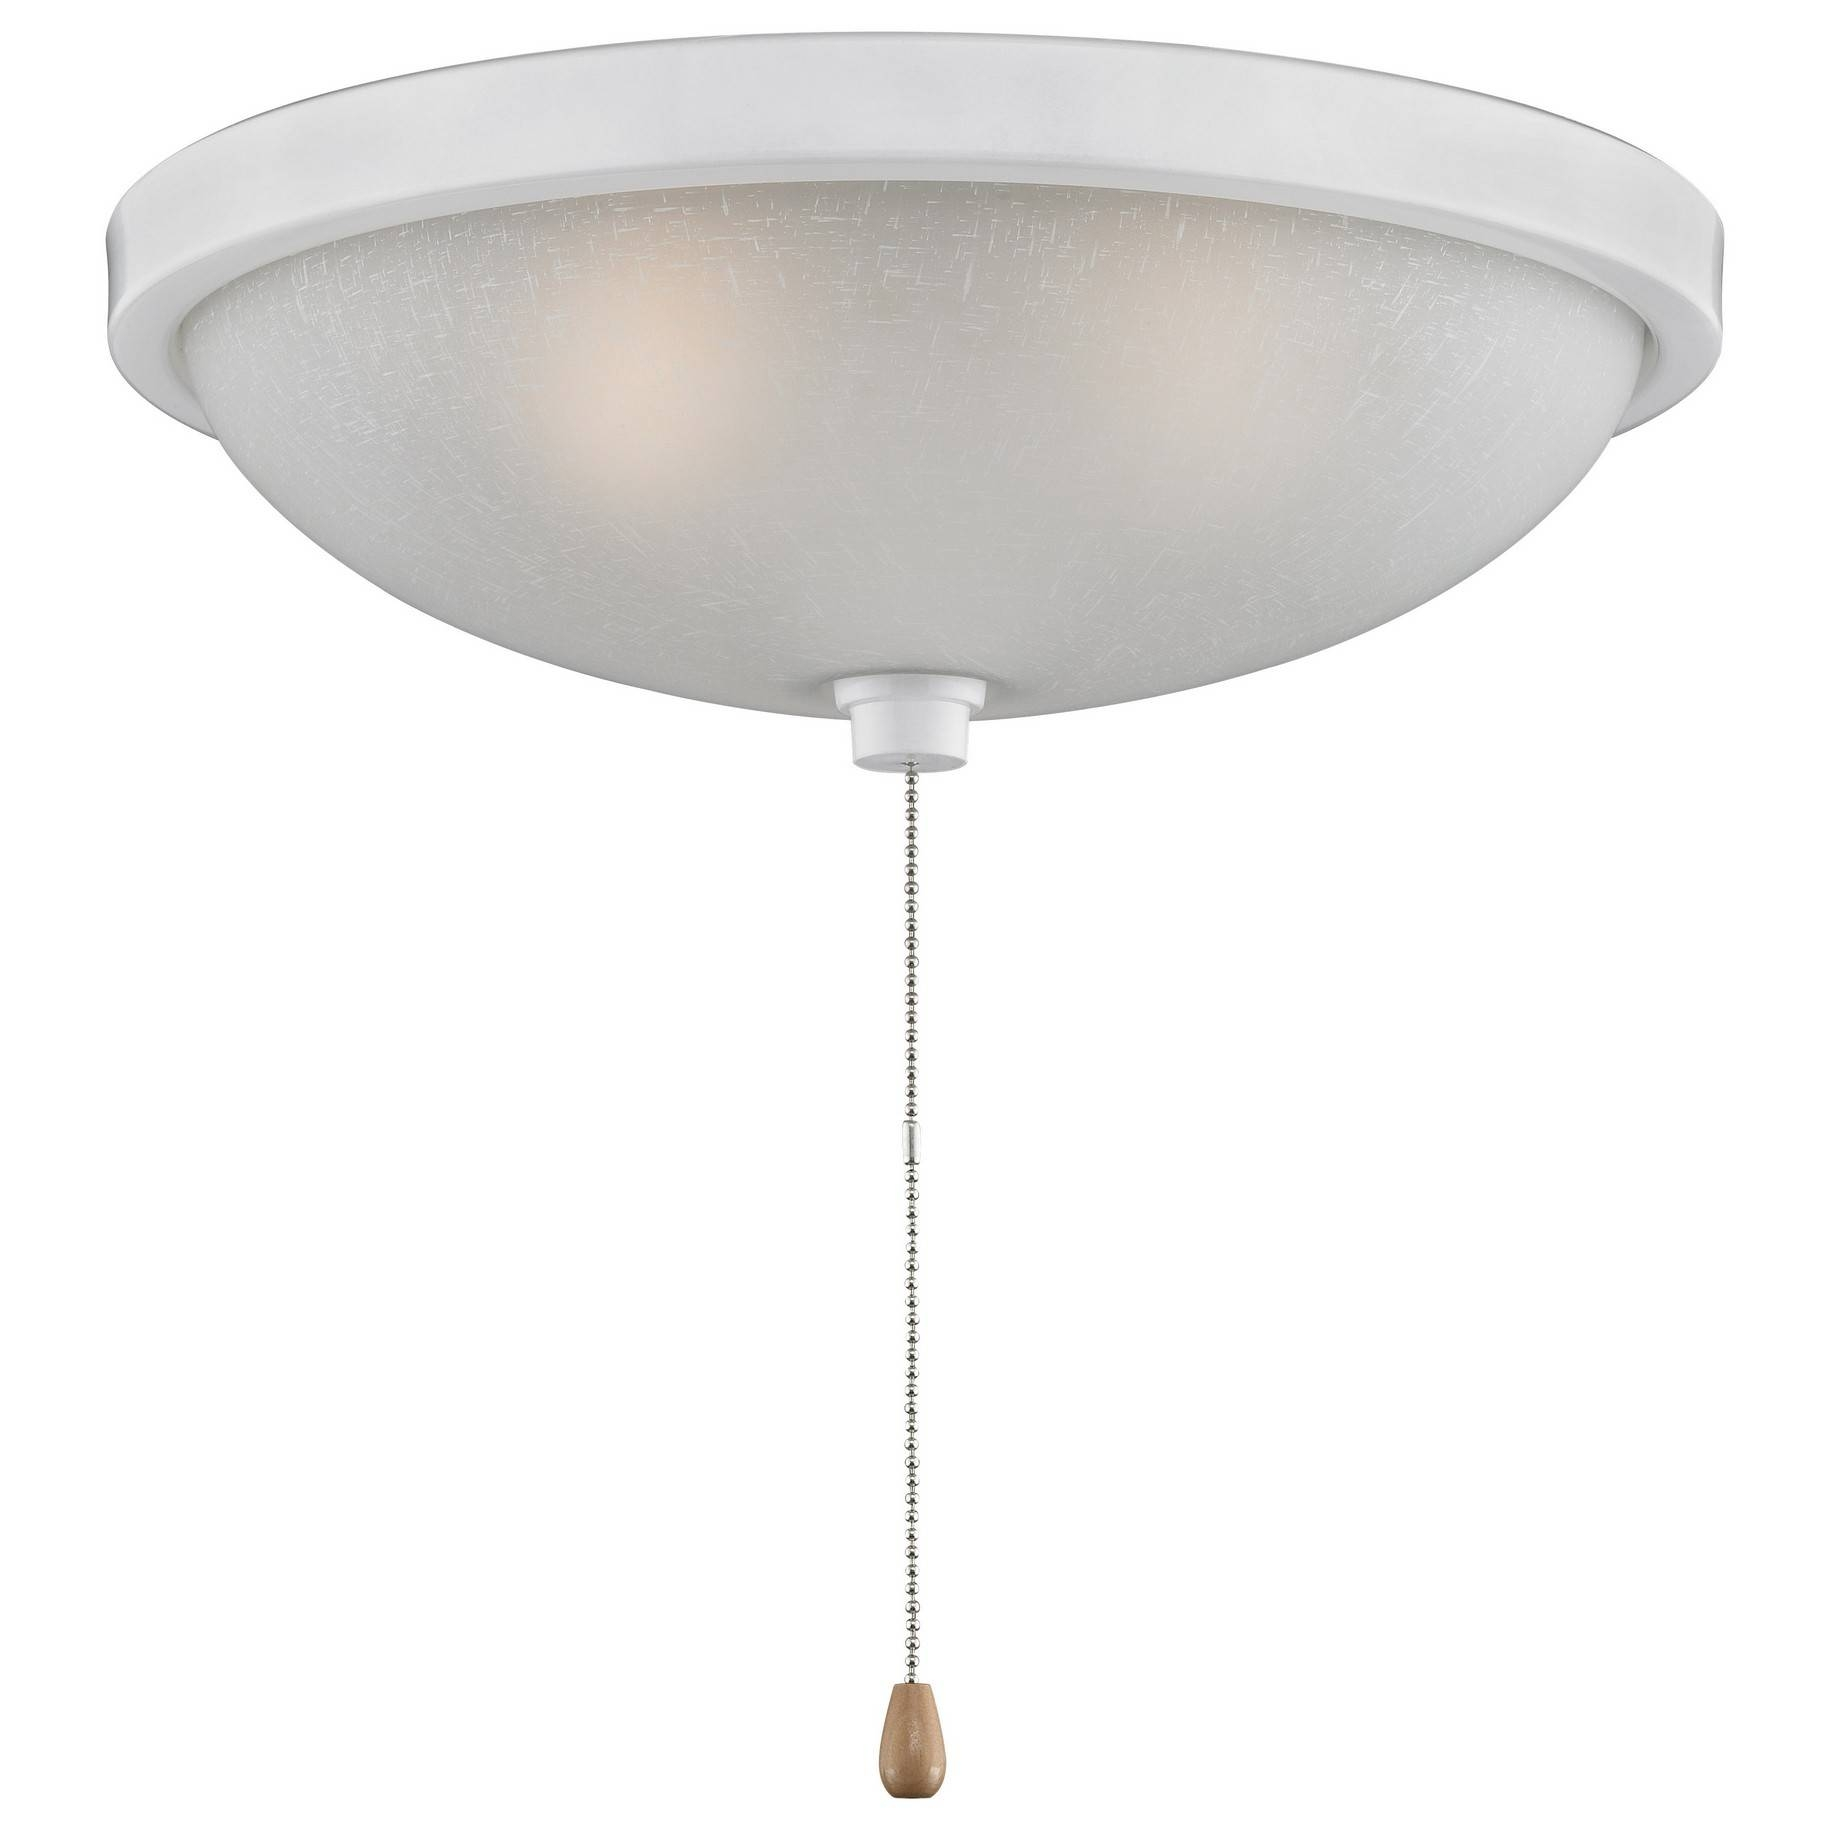 New Ceiling Light Pull Chain 78 On Modern Pendant Lighting For throughout Pull Chain Pendant Lights Fixtures (Image 11 of 15)